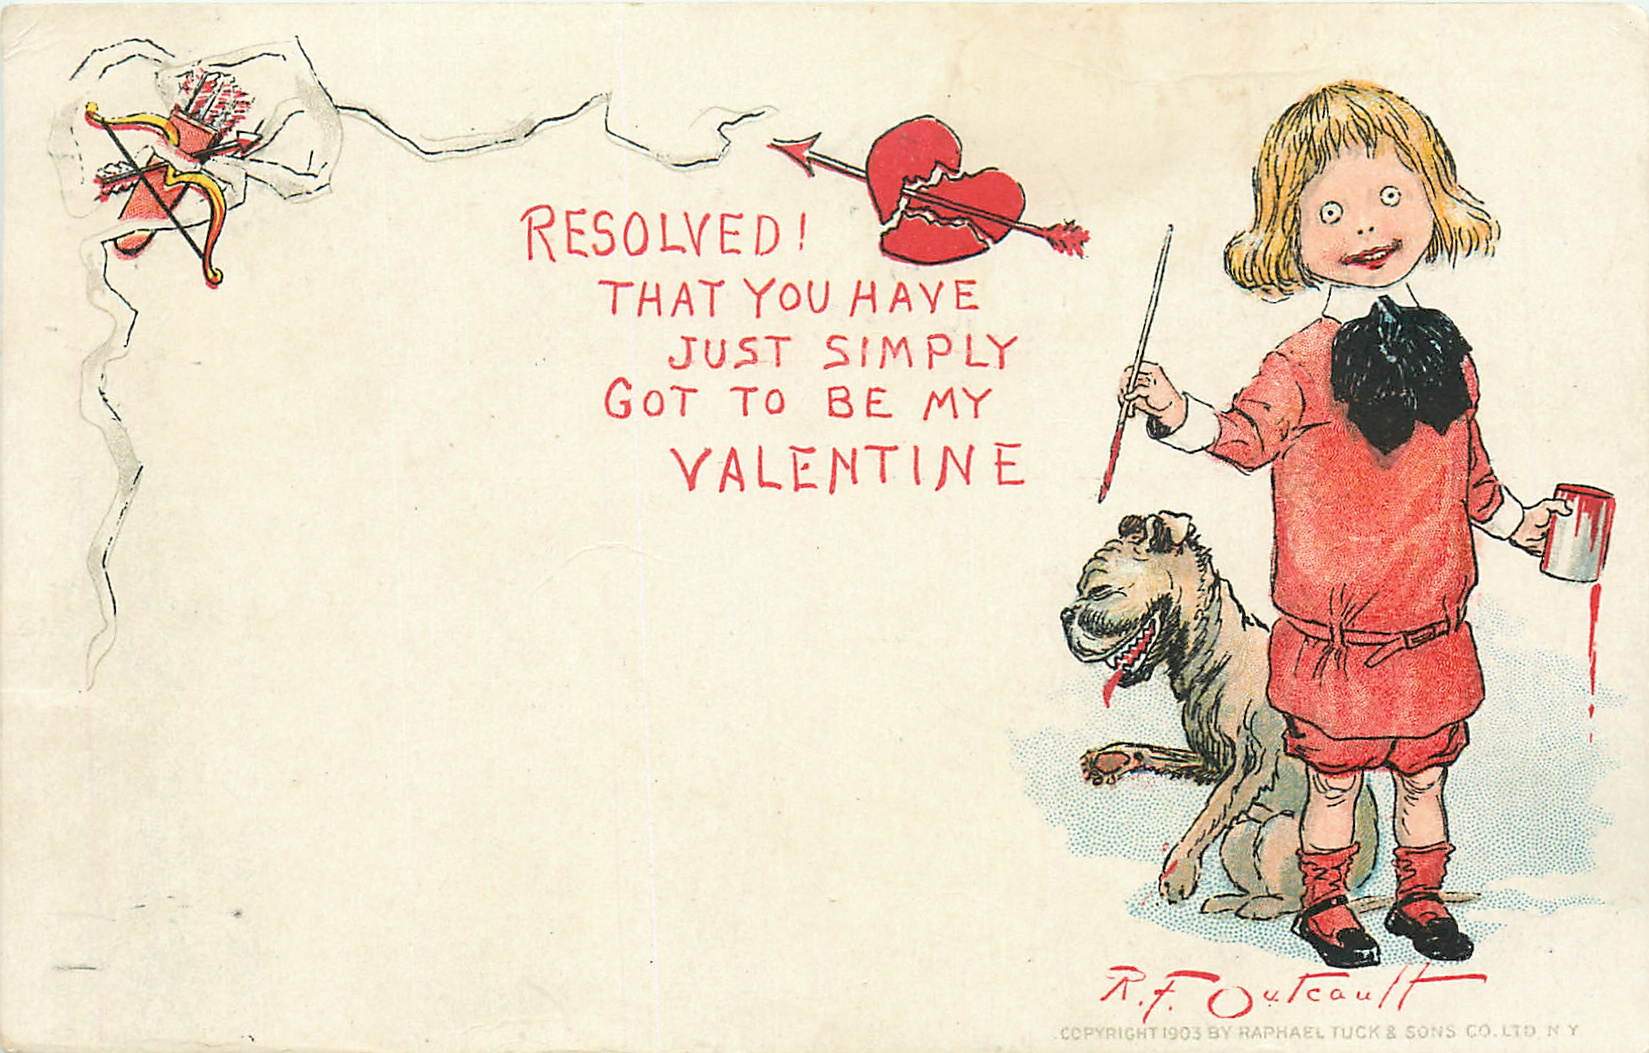 RESOLVED! THAT YOU HAVE JUST SIMPLY GOT TO BE MY VALENTINE ...